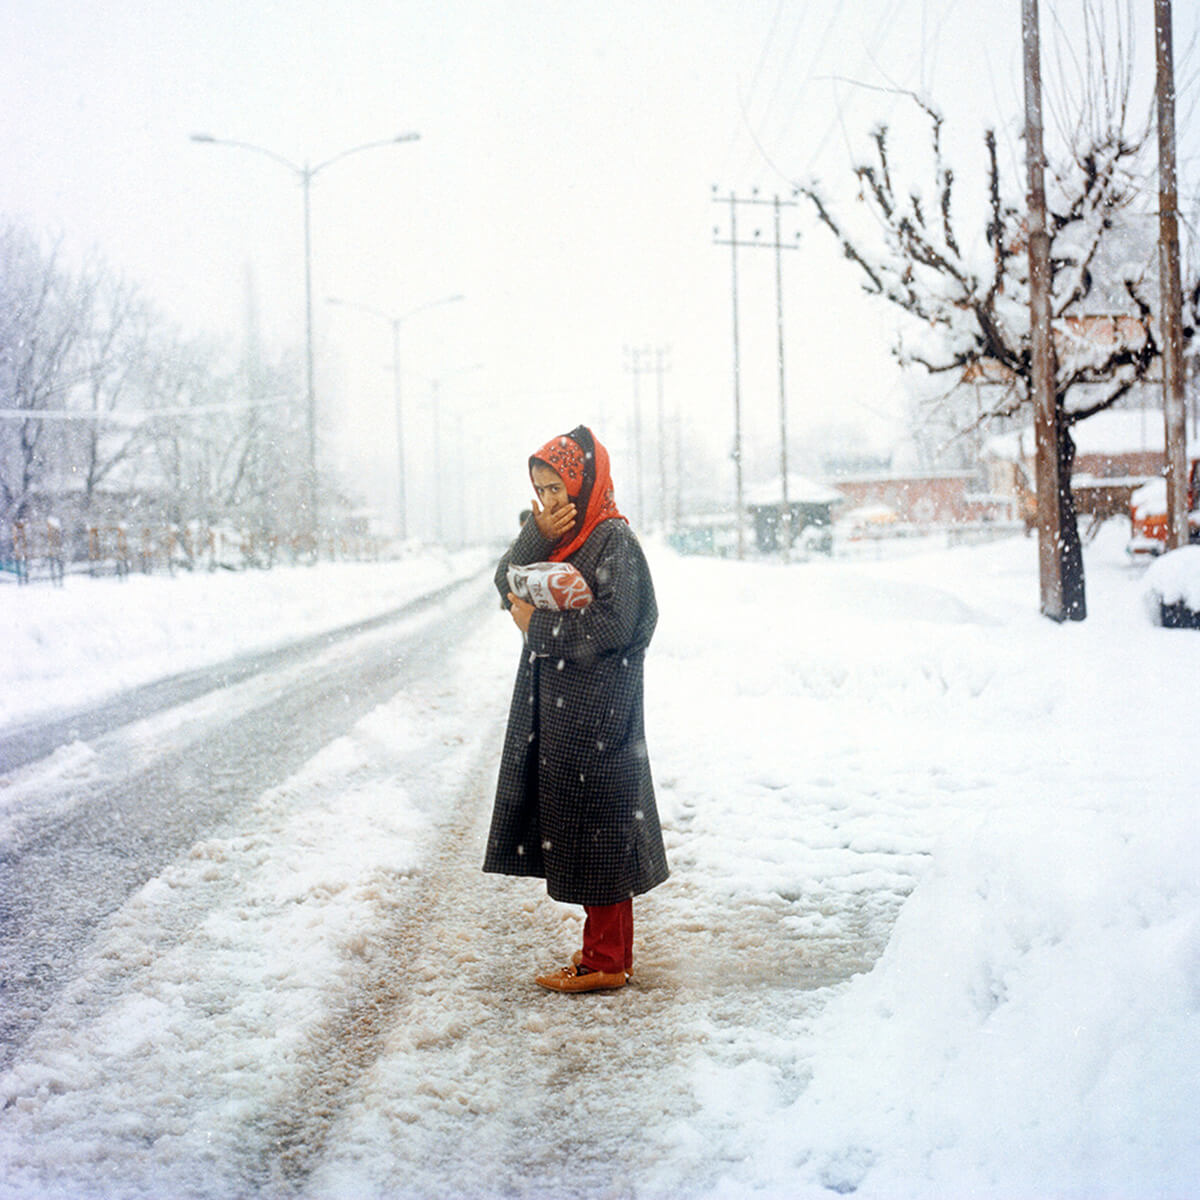 Snow by Sohrab Hura | Durjoy Bangladesh Foundation | STIRworld